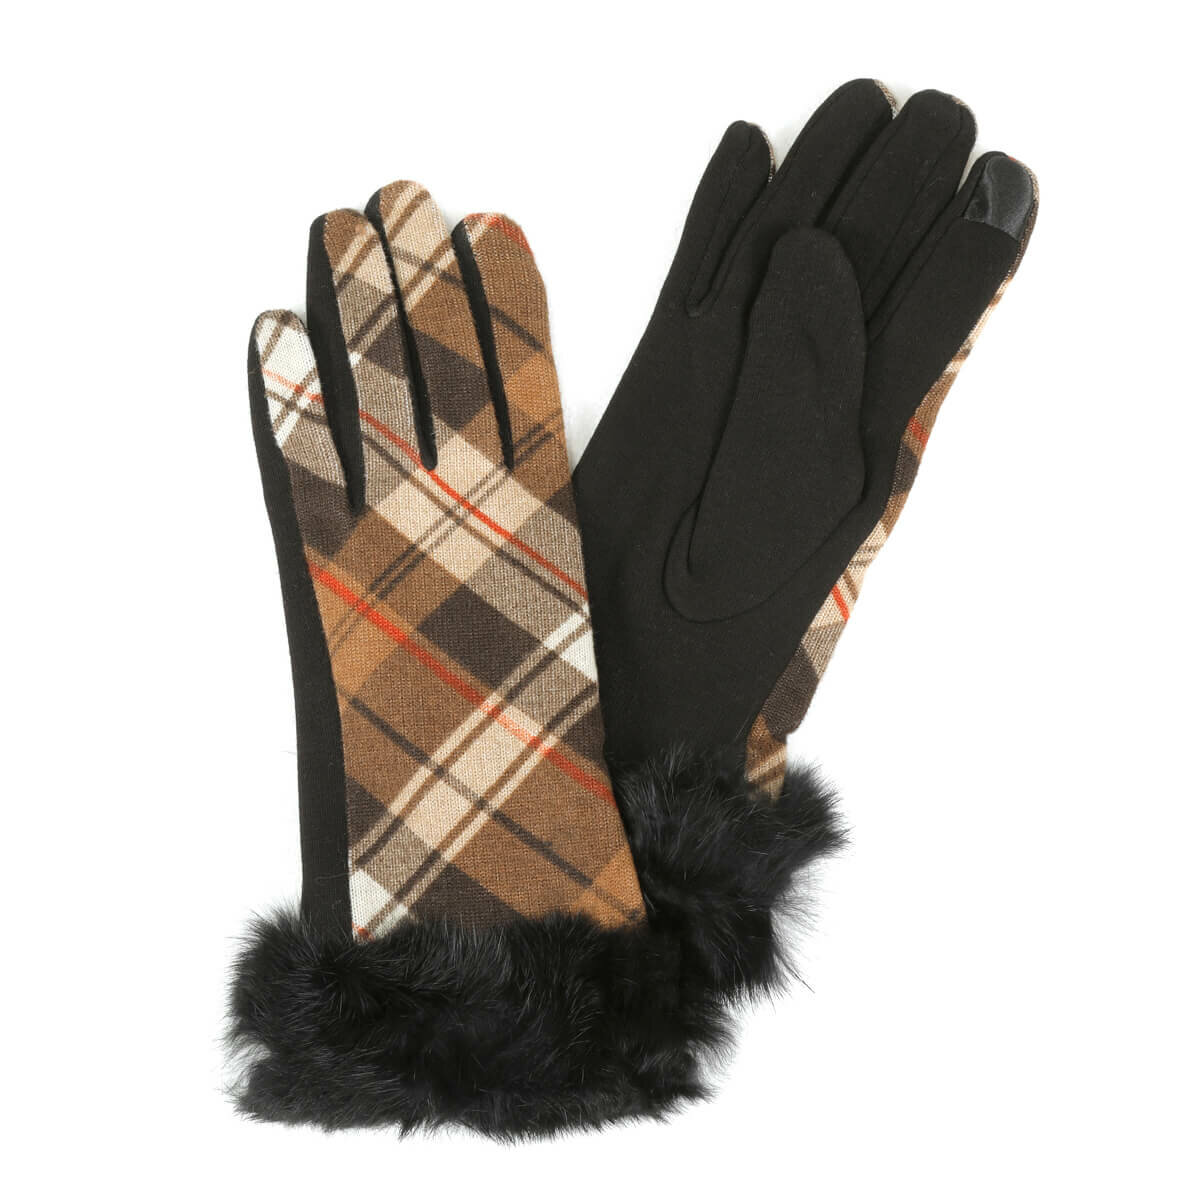 FLO ELD 11088 85Z Black Women 'S Gloves BUTIGO